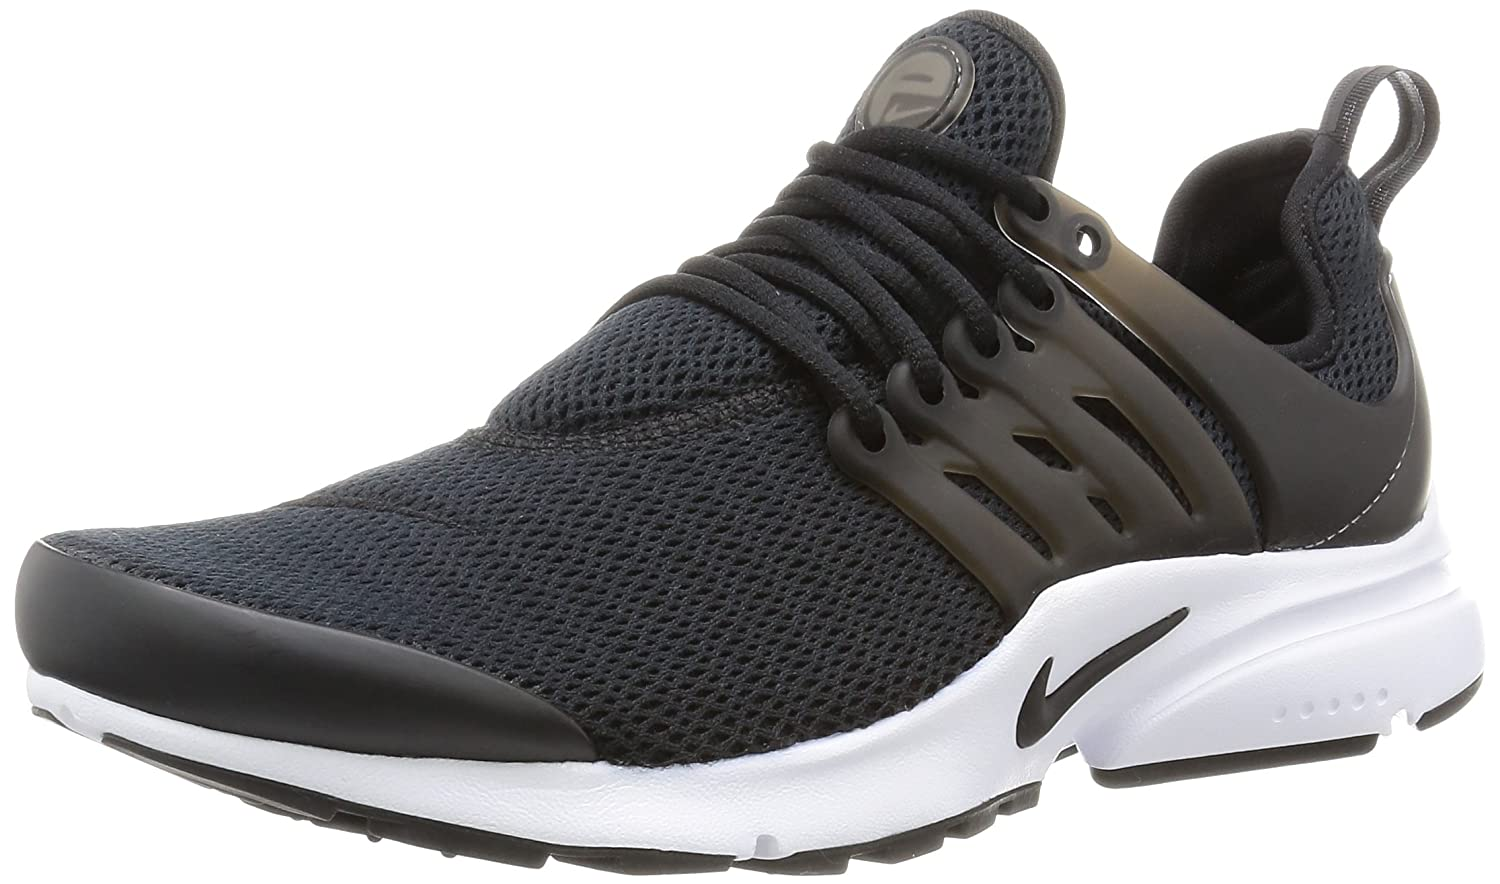 detailed look fb8ae 14770 Nike Women's Air Presto Running Shoe